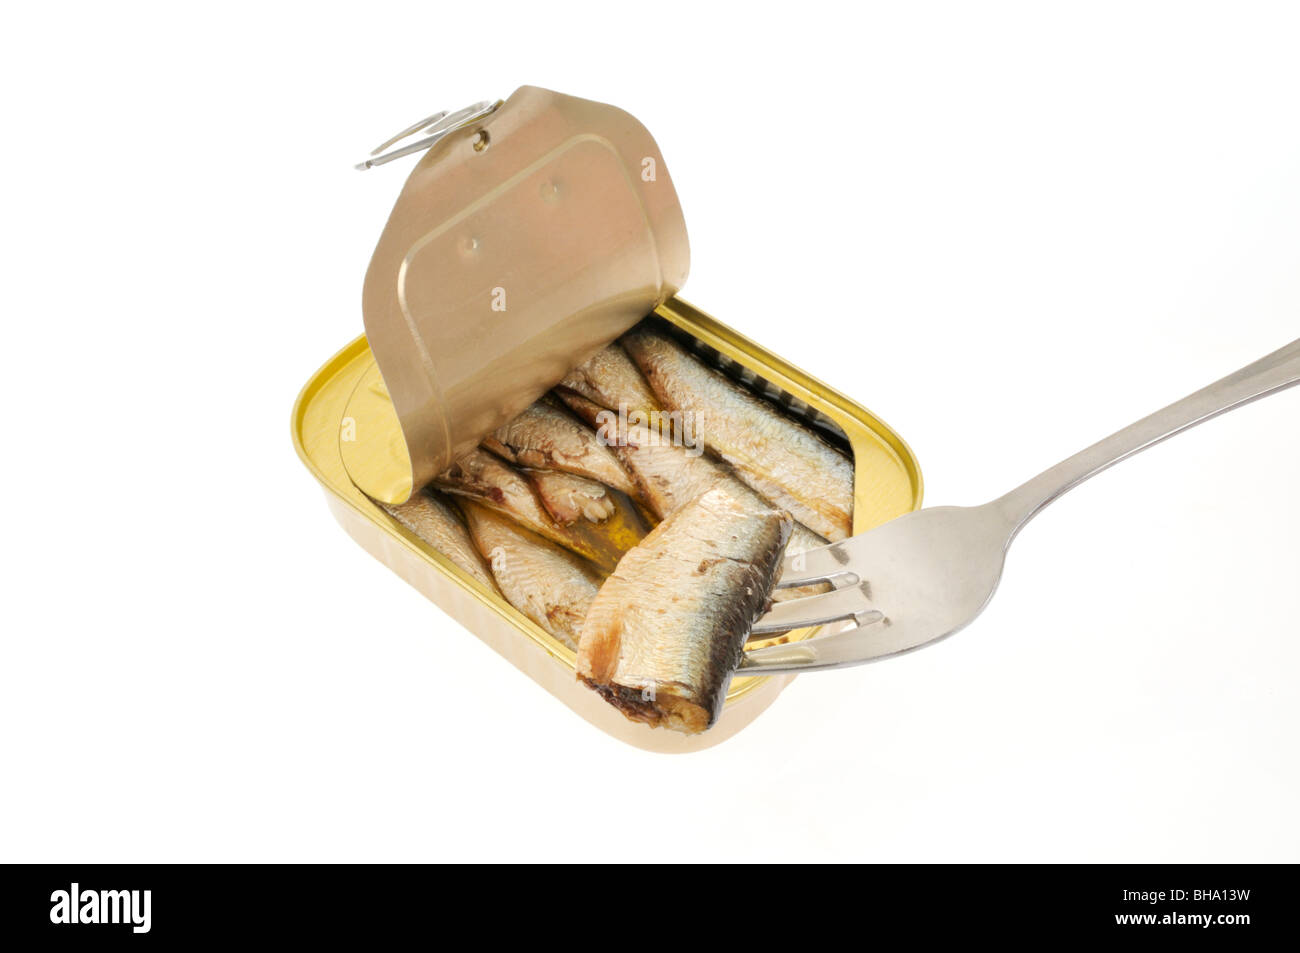 An open pull tab tin of sardines packed in oil on white background with a sardine on fork. - Stock Image